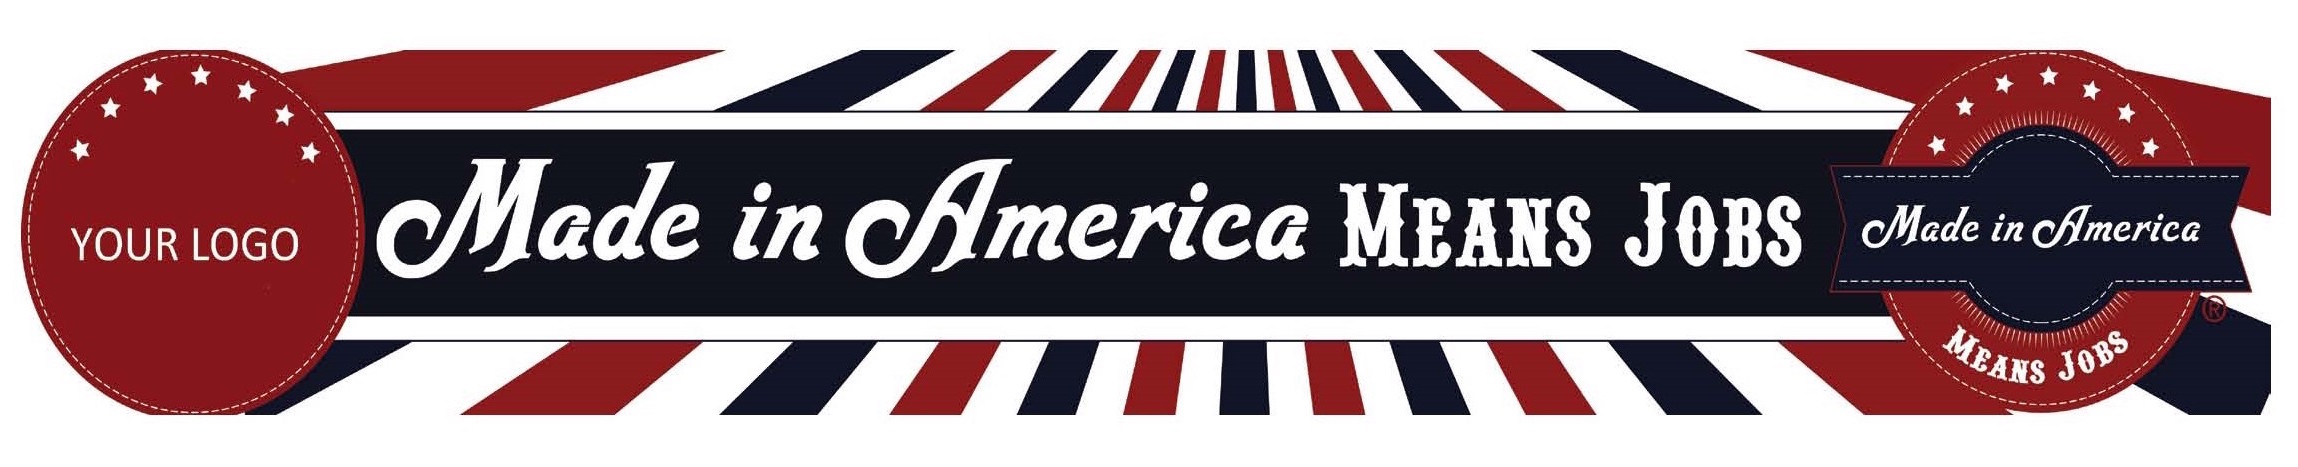 bumper sticker - made in american means jobs